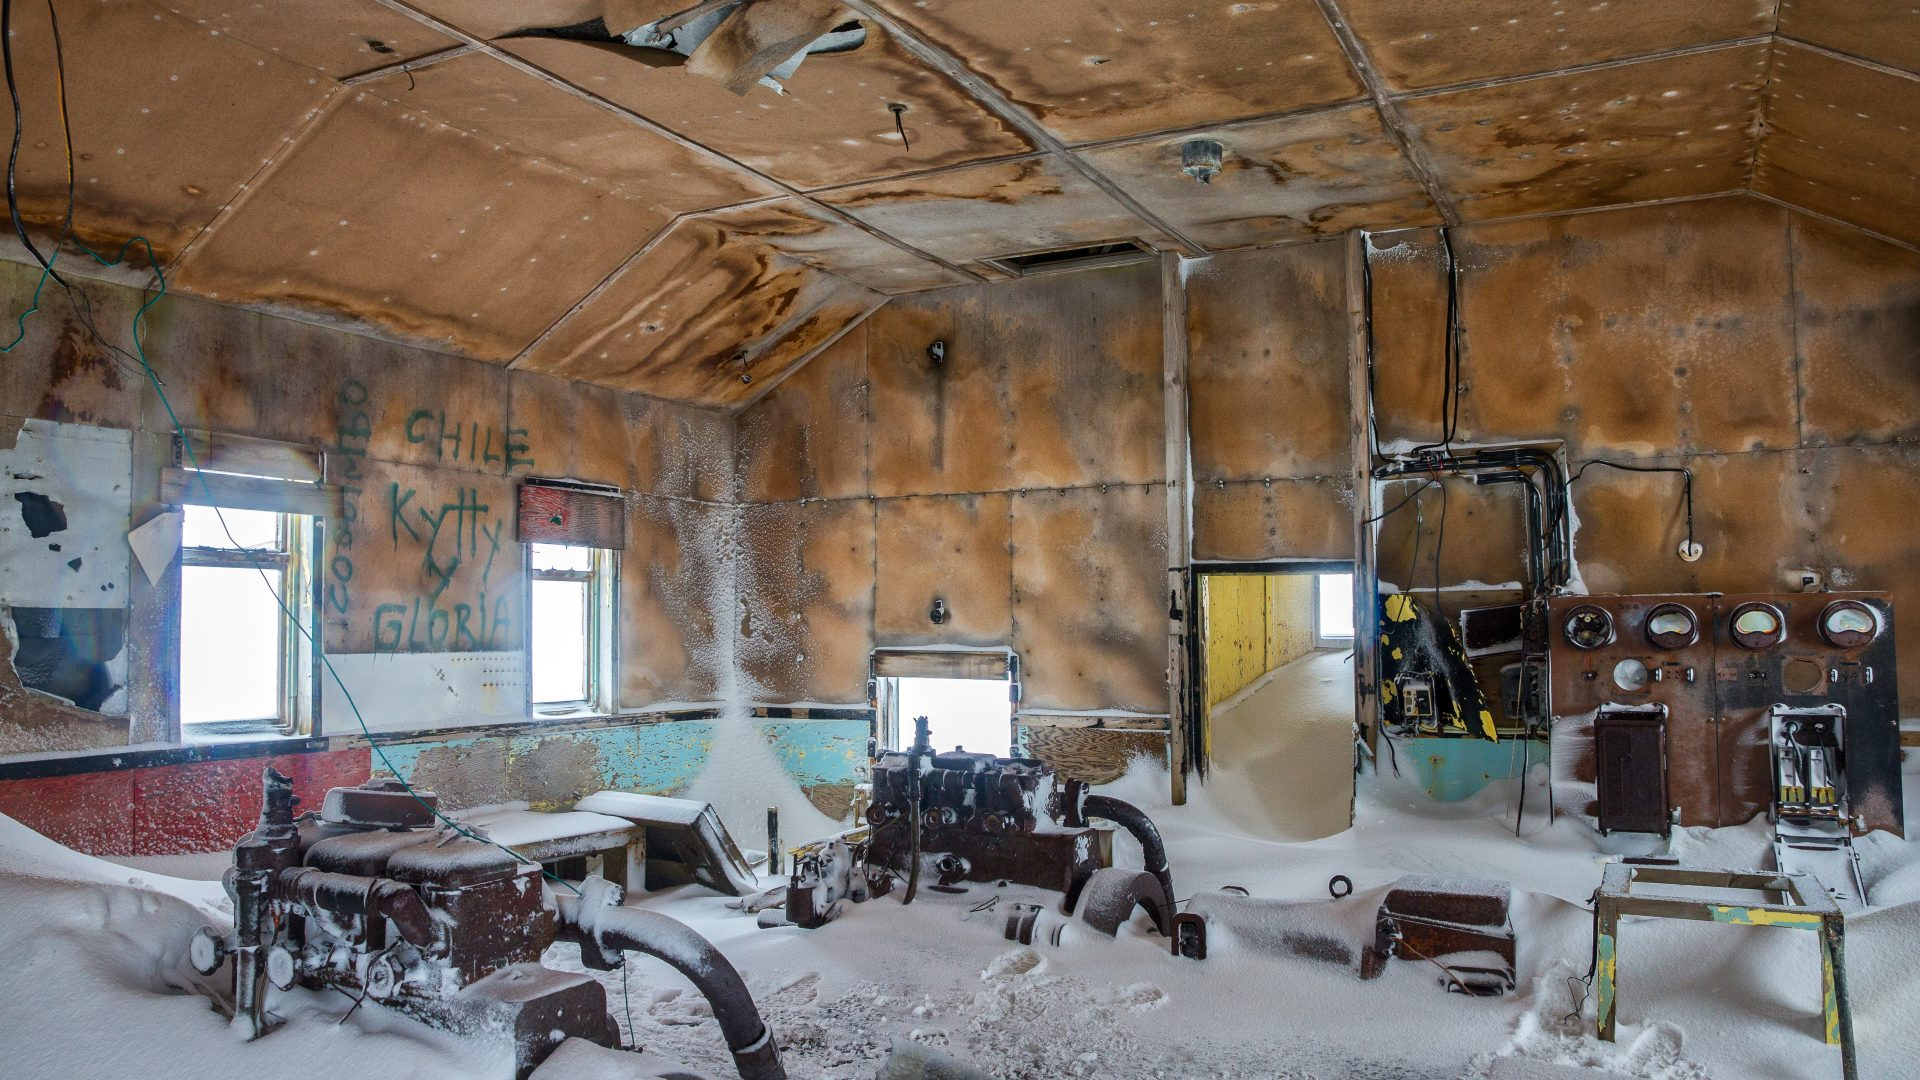 The interior of an abandoned building in Antarctica.